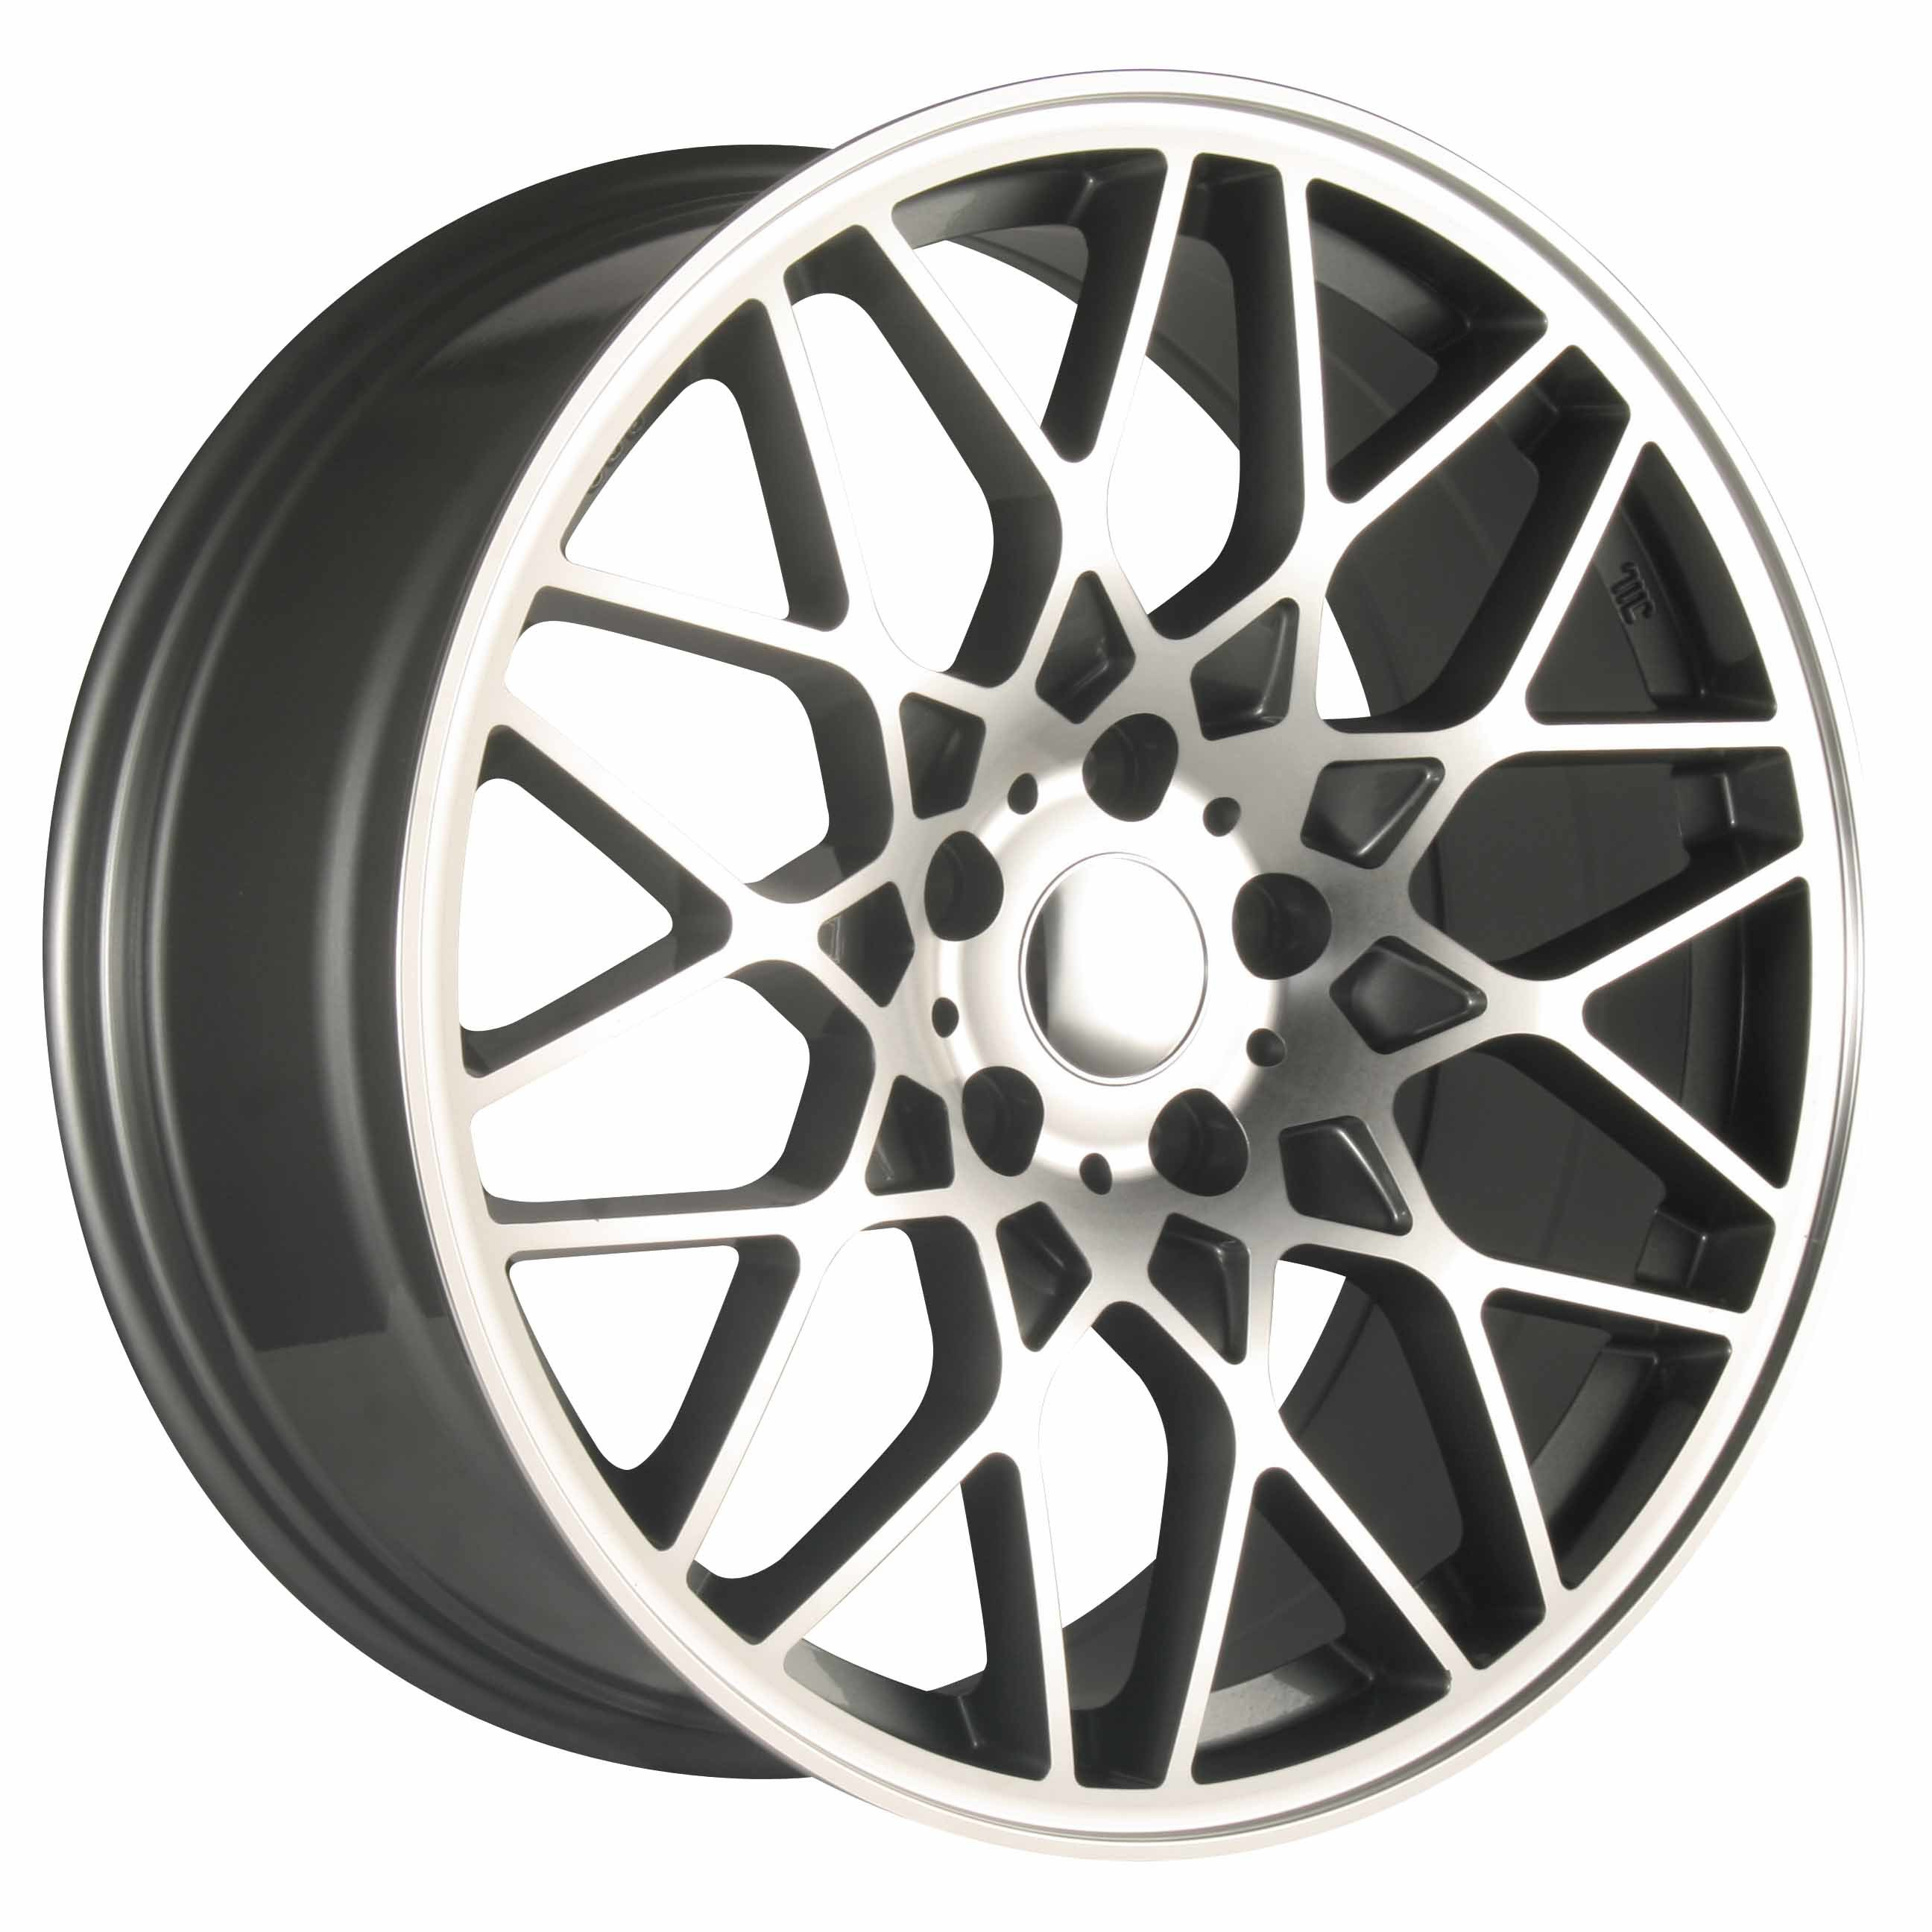 18inch-20inch Alloy Wheel for Aftermarket